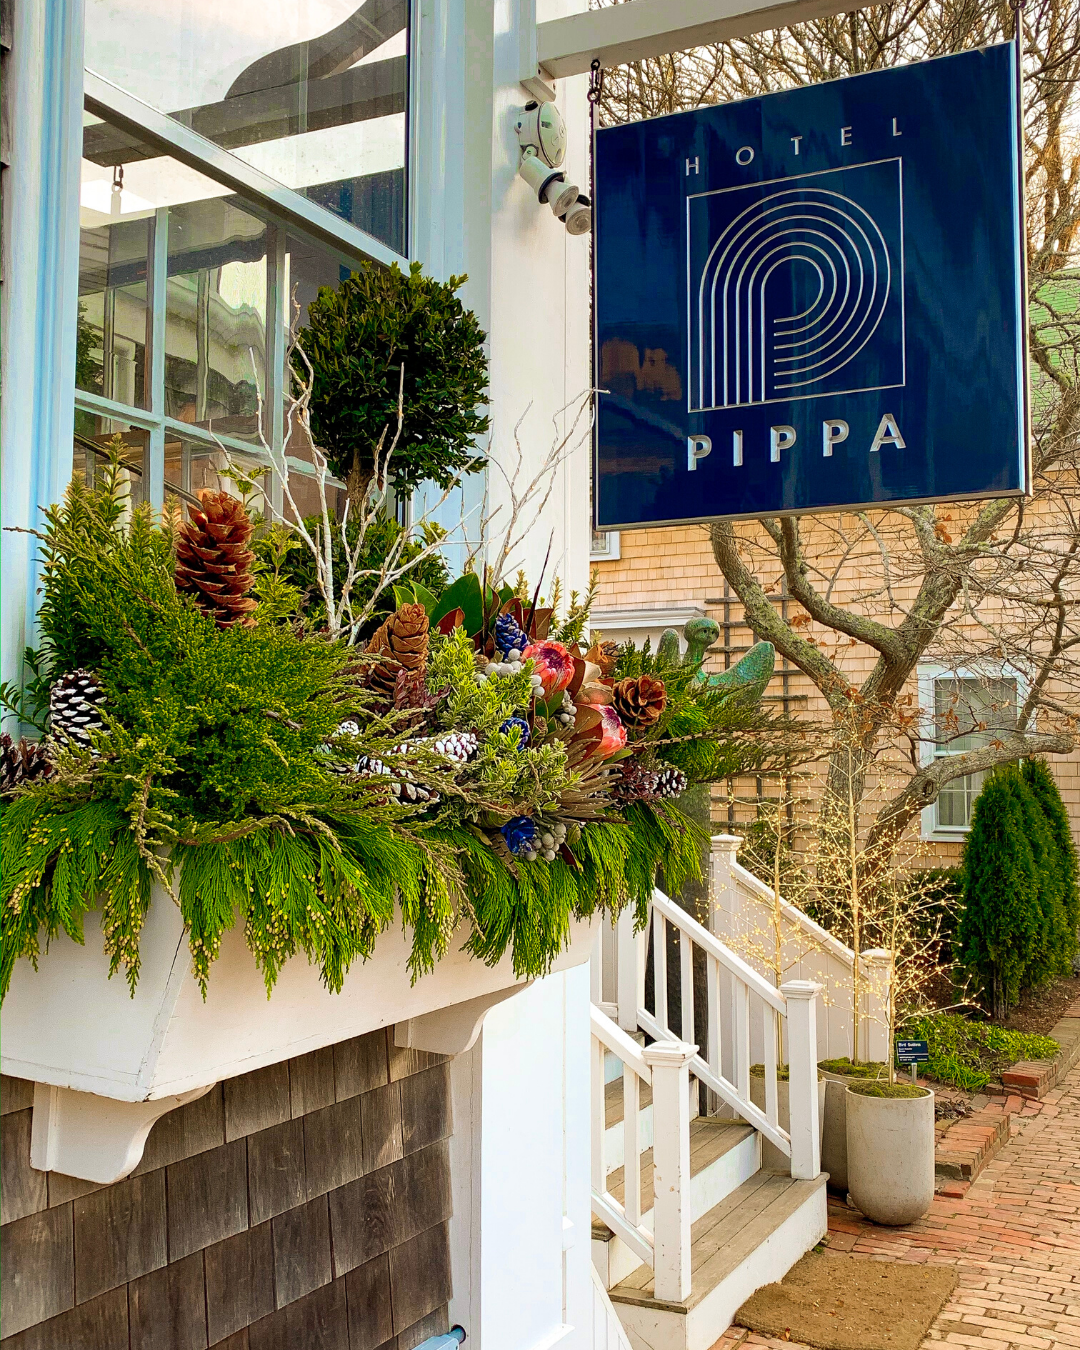 Hotel_Pippa_Nantucket_Place_To_Stay_8